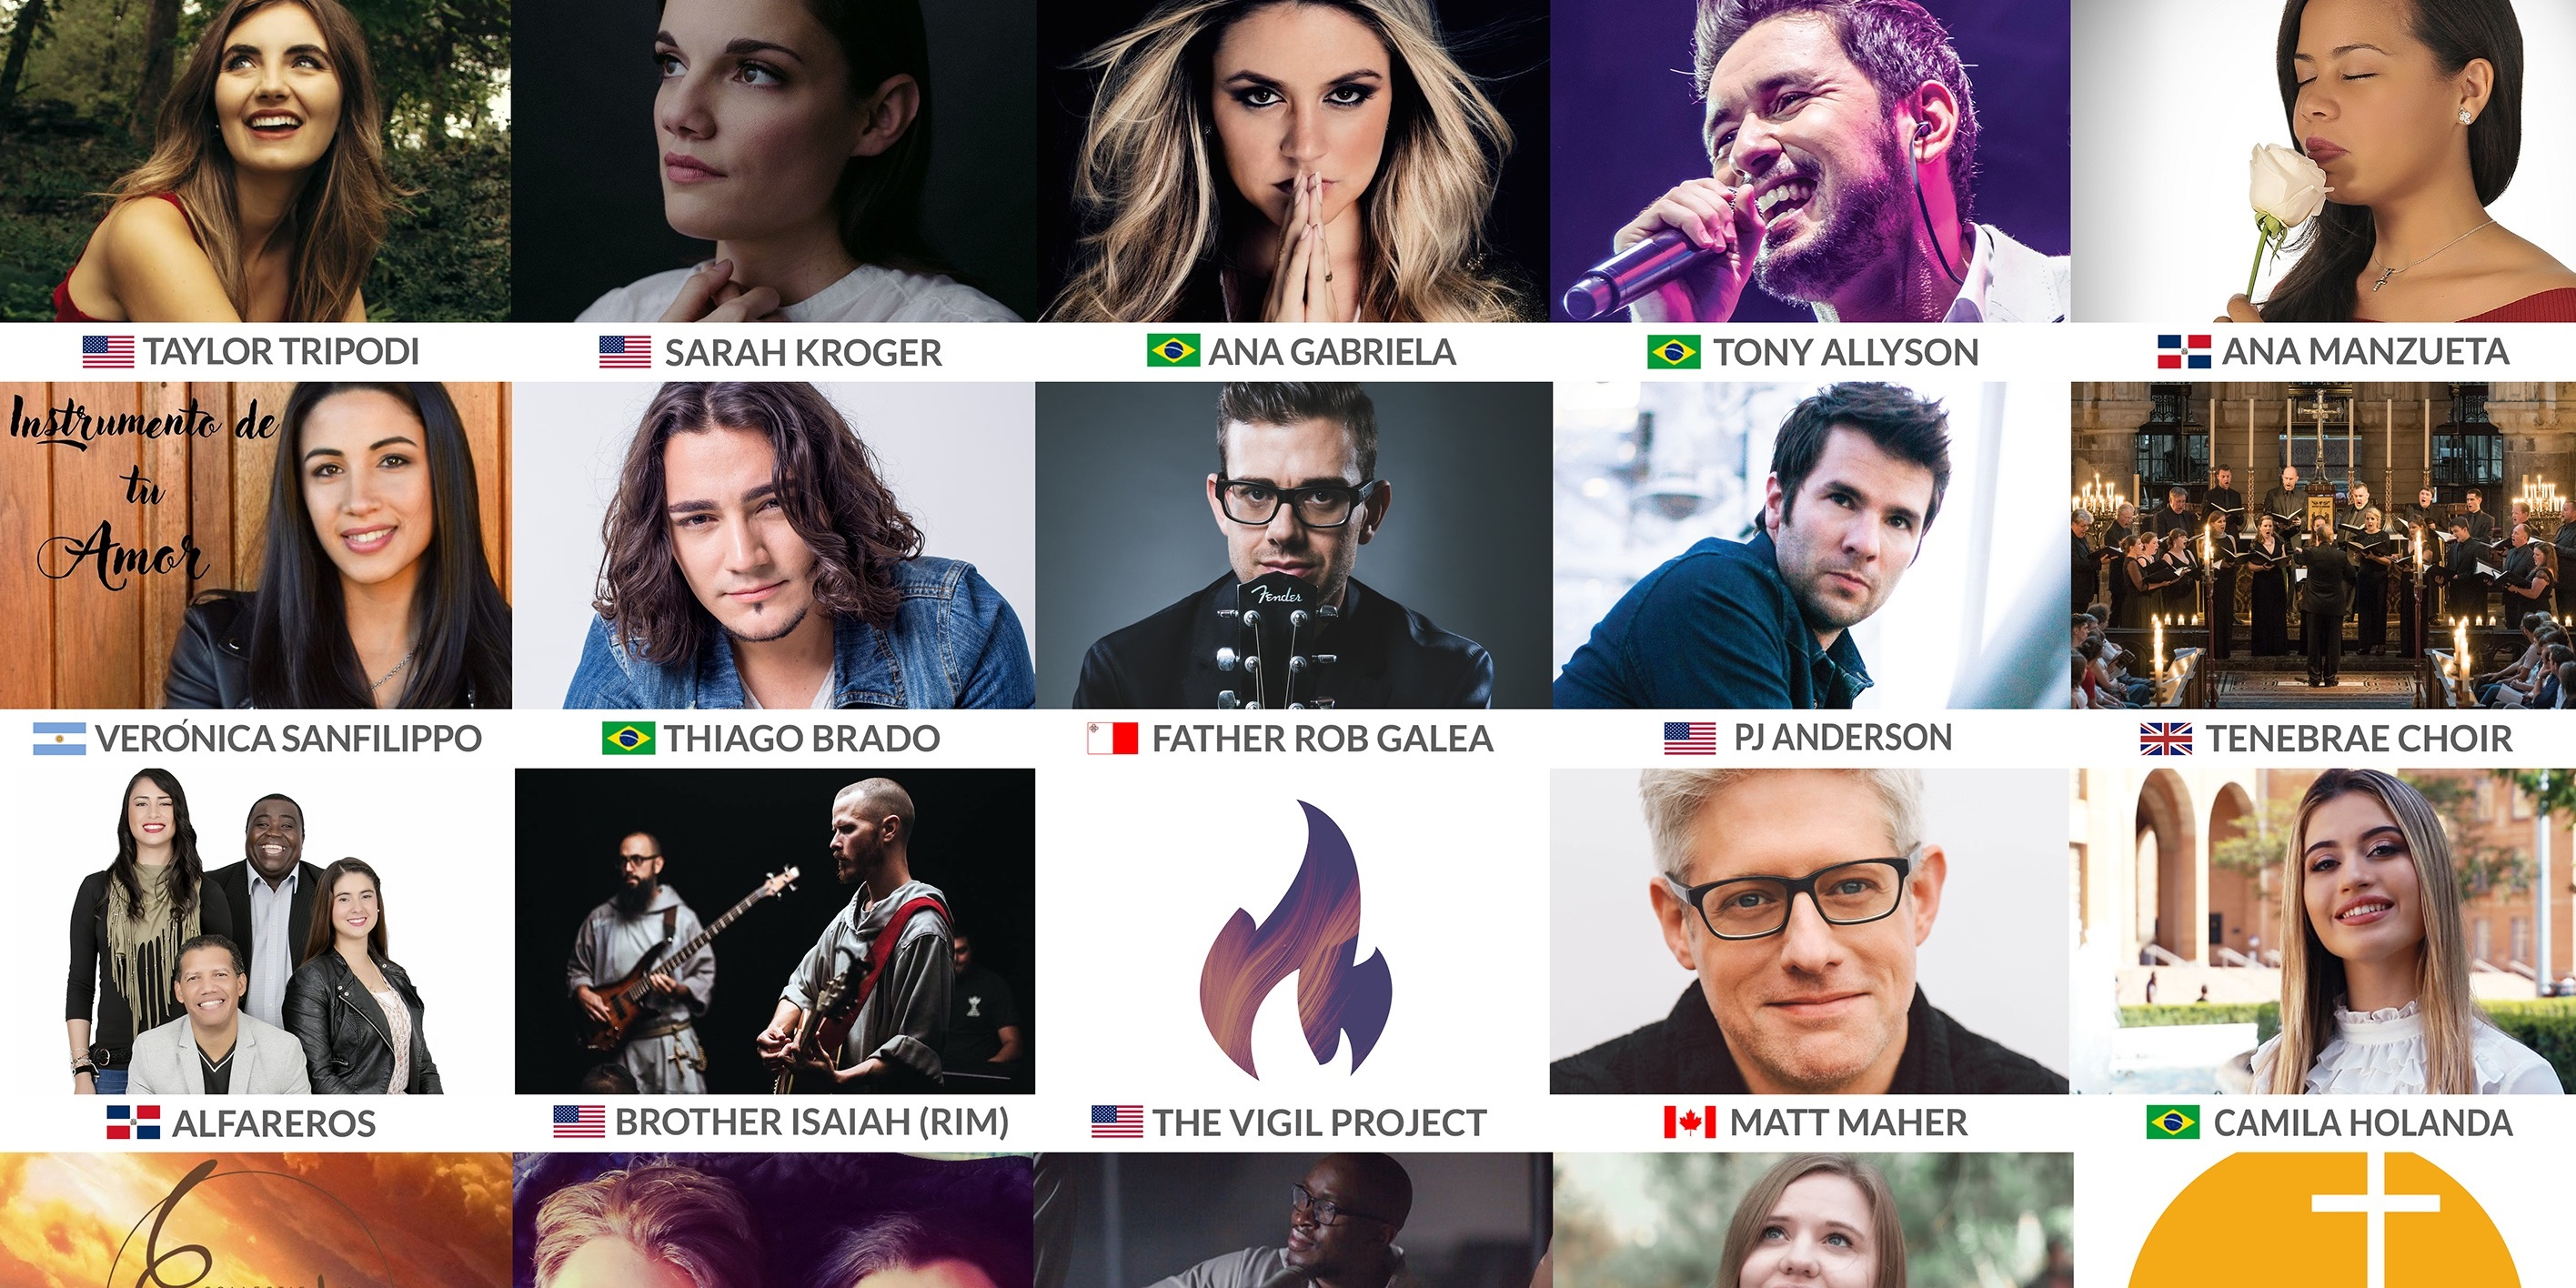 The Top 30 Catholic Music Artists Of 2018